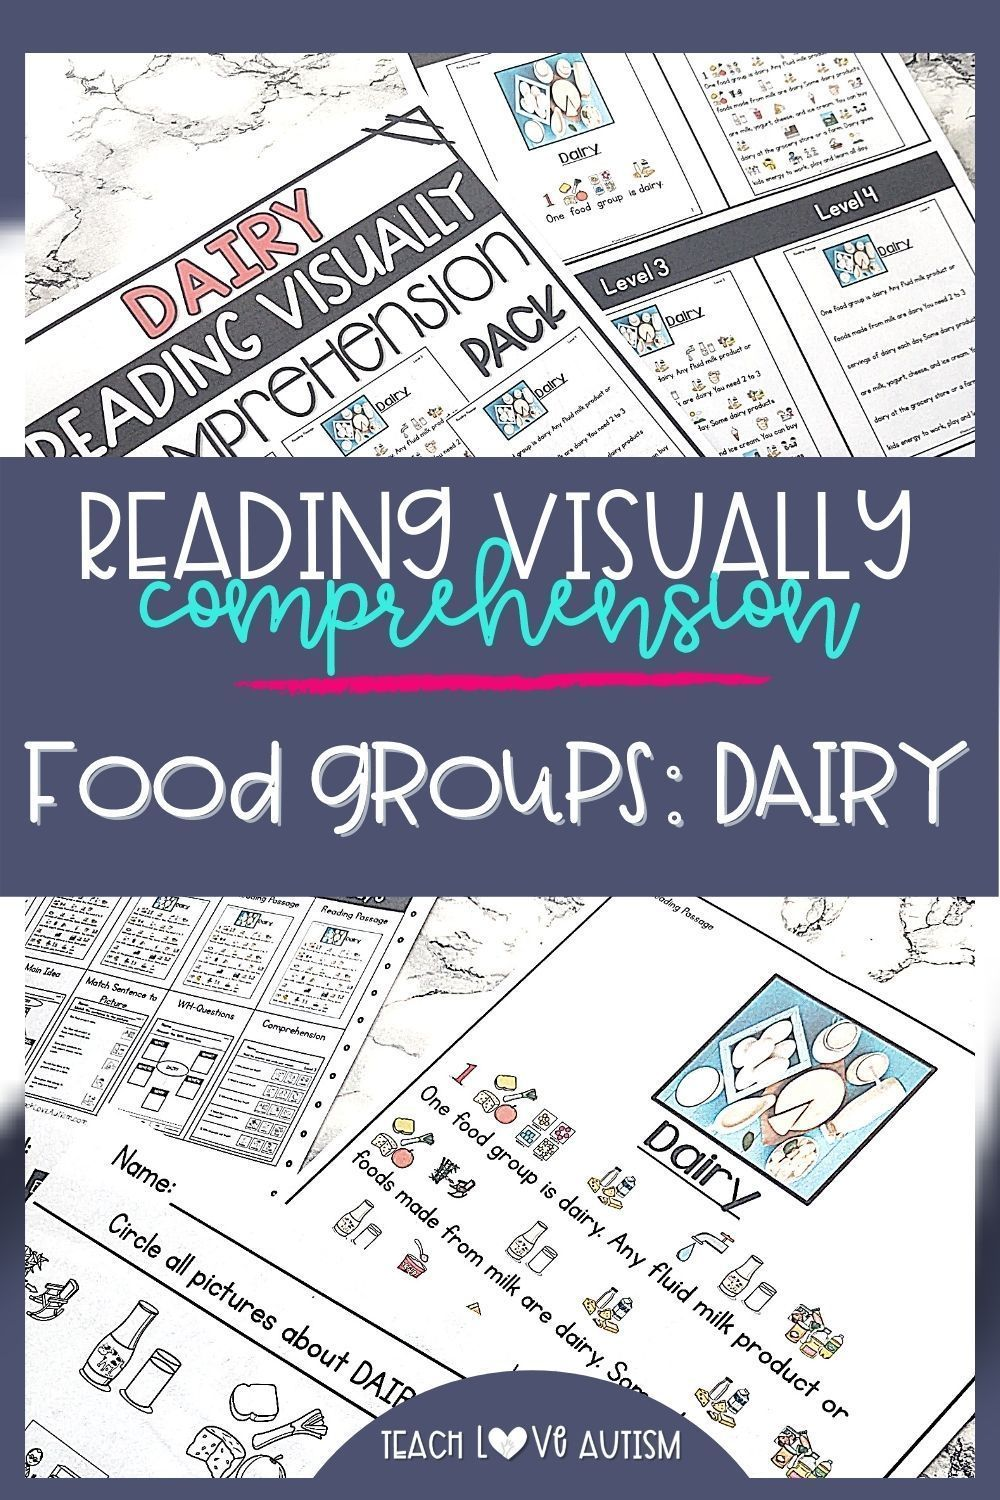 Dairy Reading Visually Comprehension Shop Teach Love Autism In 2021 Reading Comprehension Skills Special Education Activities Reading Comprehension Activities [ 1500 x 1000 Pixel ]